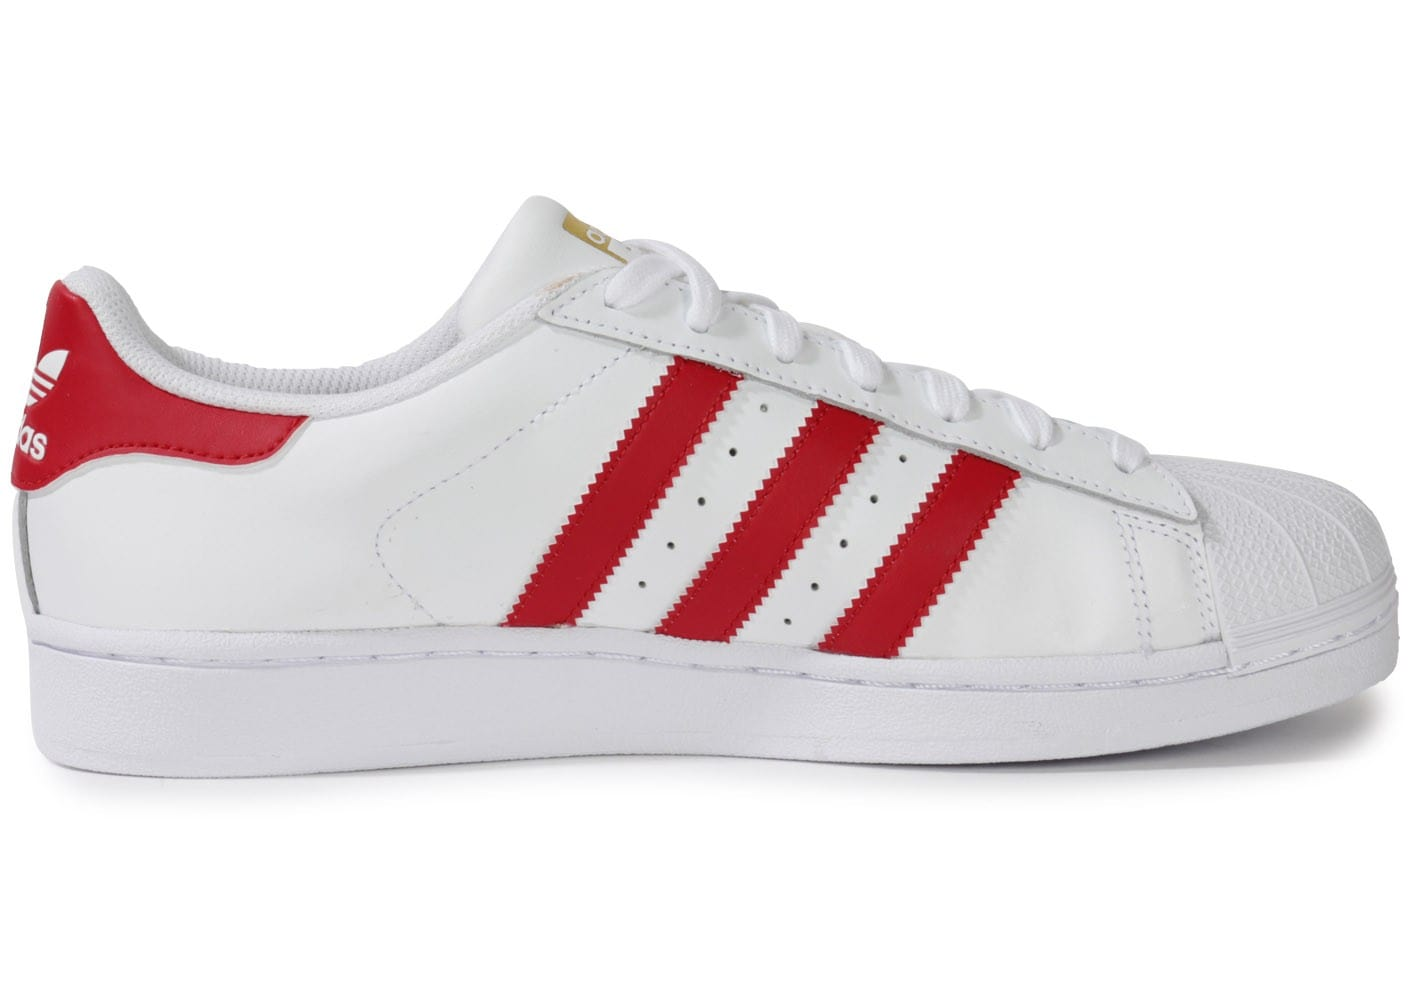 adidas superstar blanche et rouge chaussures homme. Black Bedroom Furniture Sets. Home Design Ideas